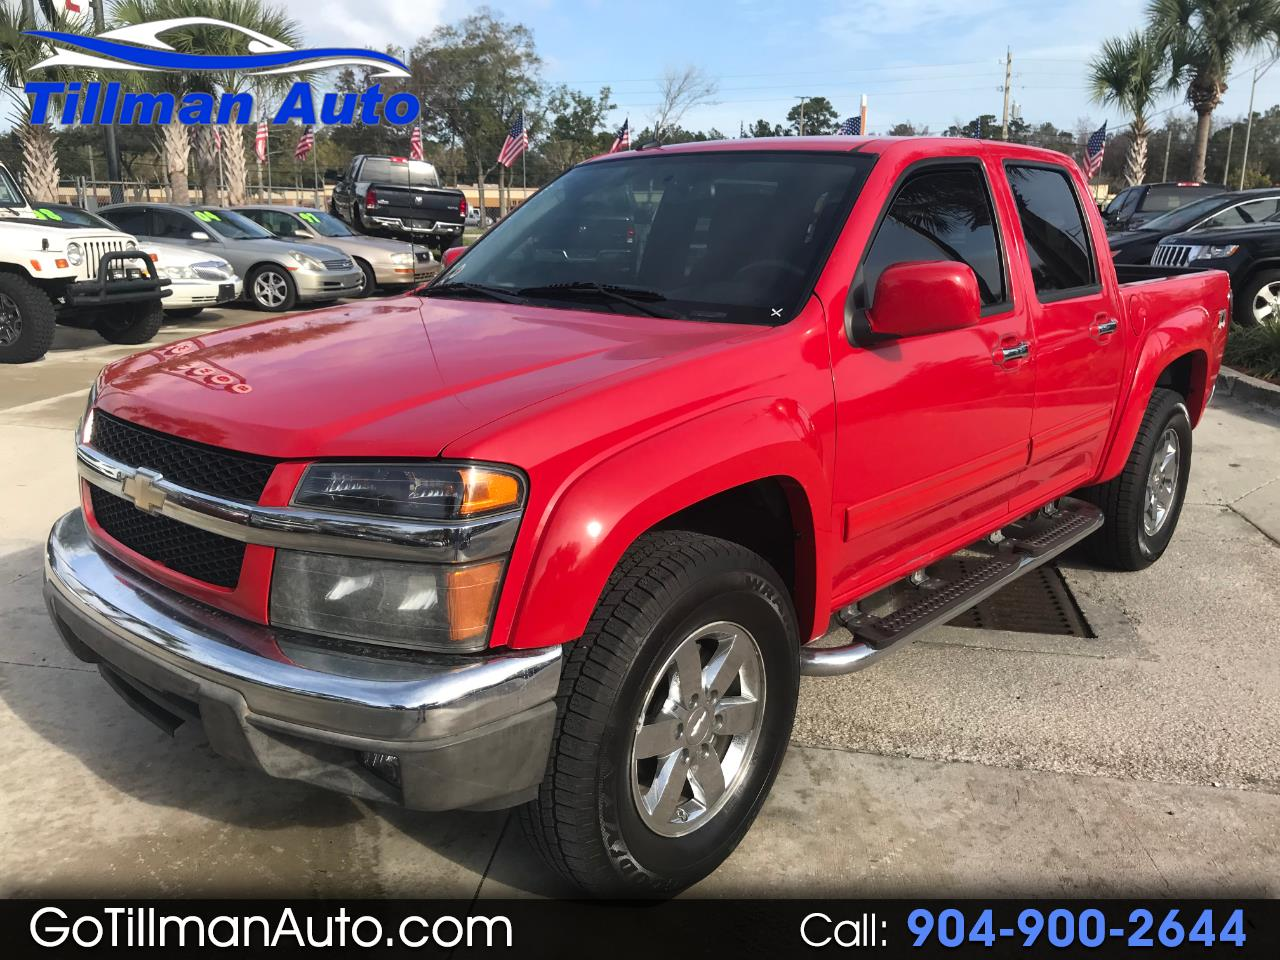 Chevrolet Colorado 2LT Crew Cab 4WD 2011